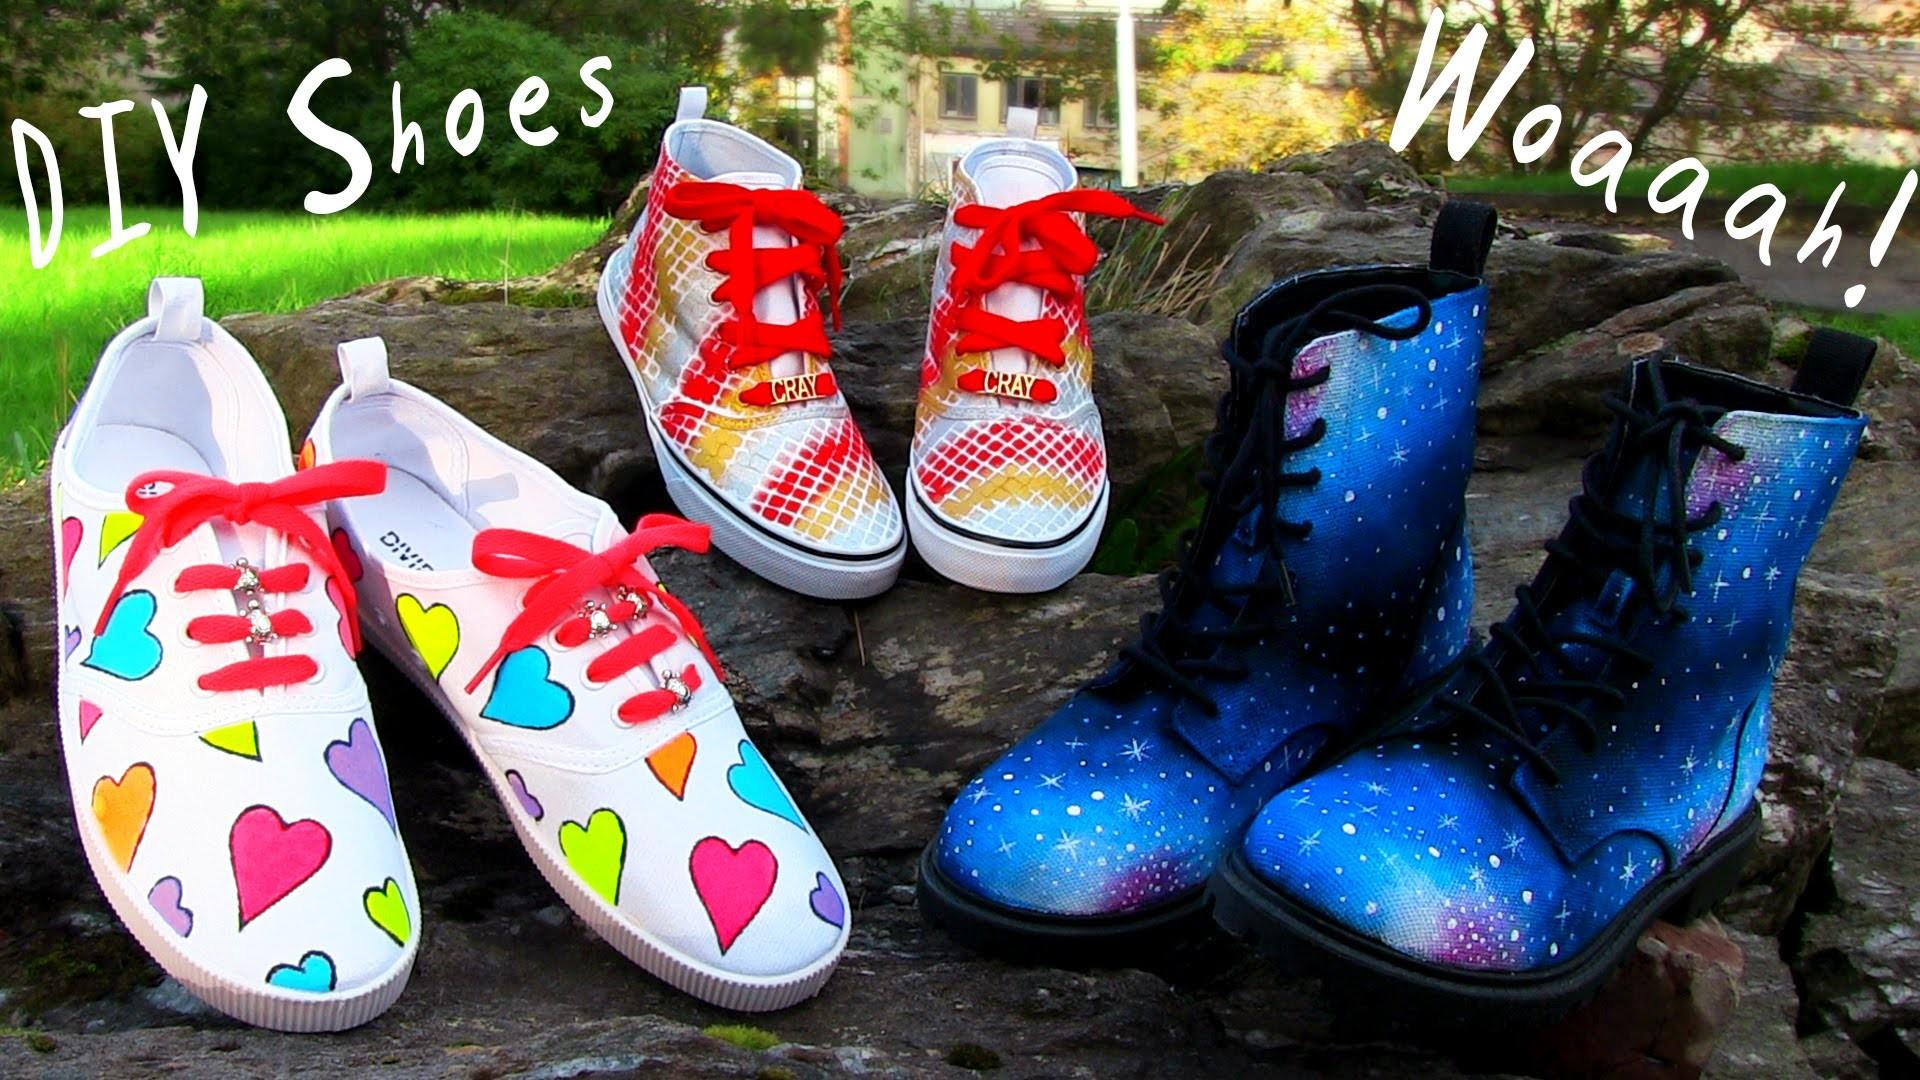 Diy Clothes Shoes Projects Sneakers Boots